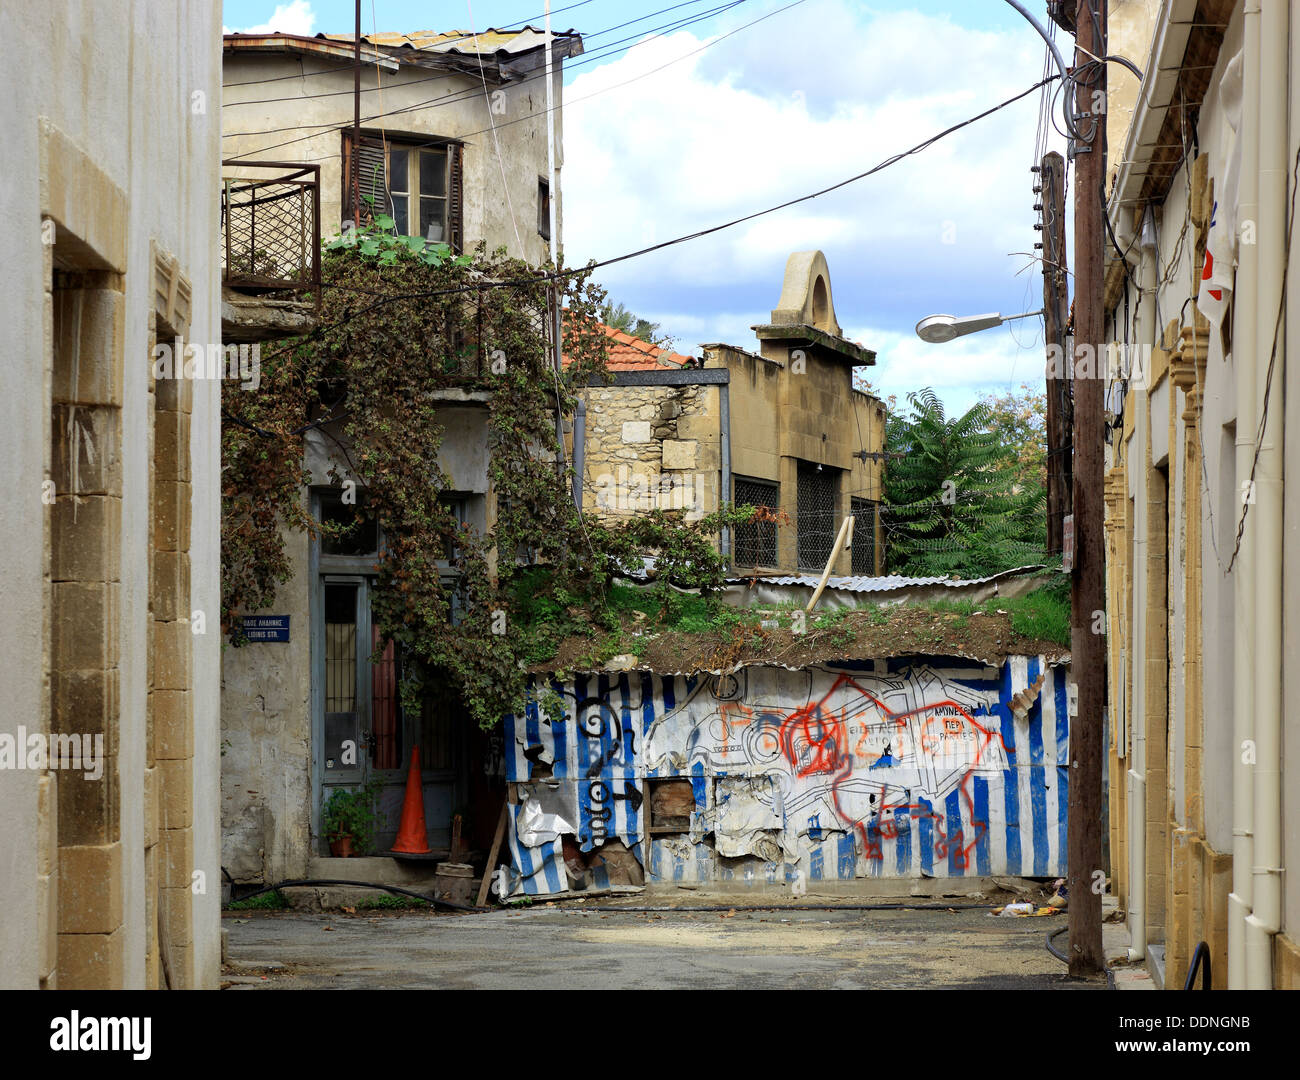 Cyprus, Nicosia, Lefkosia, Old Town, on the Green Line, Green Lane, to the Turkish border area, border, frontier, division - Stock Image